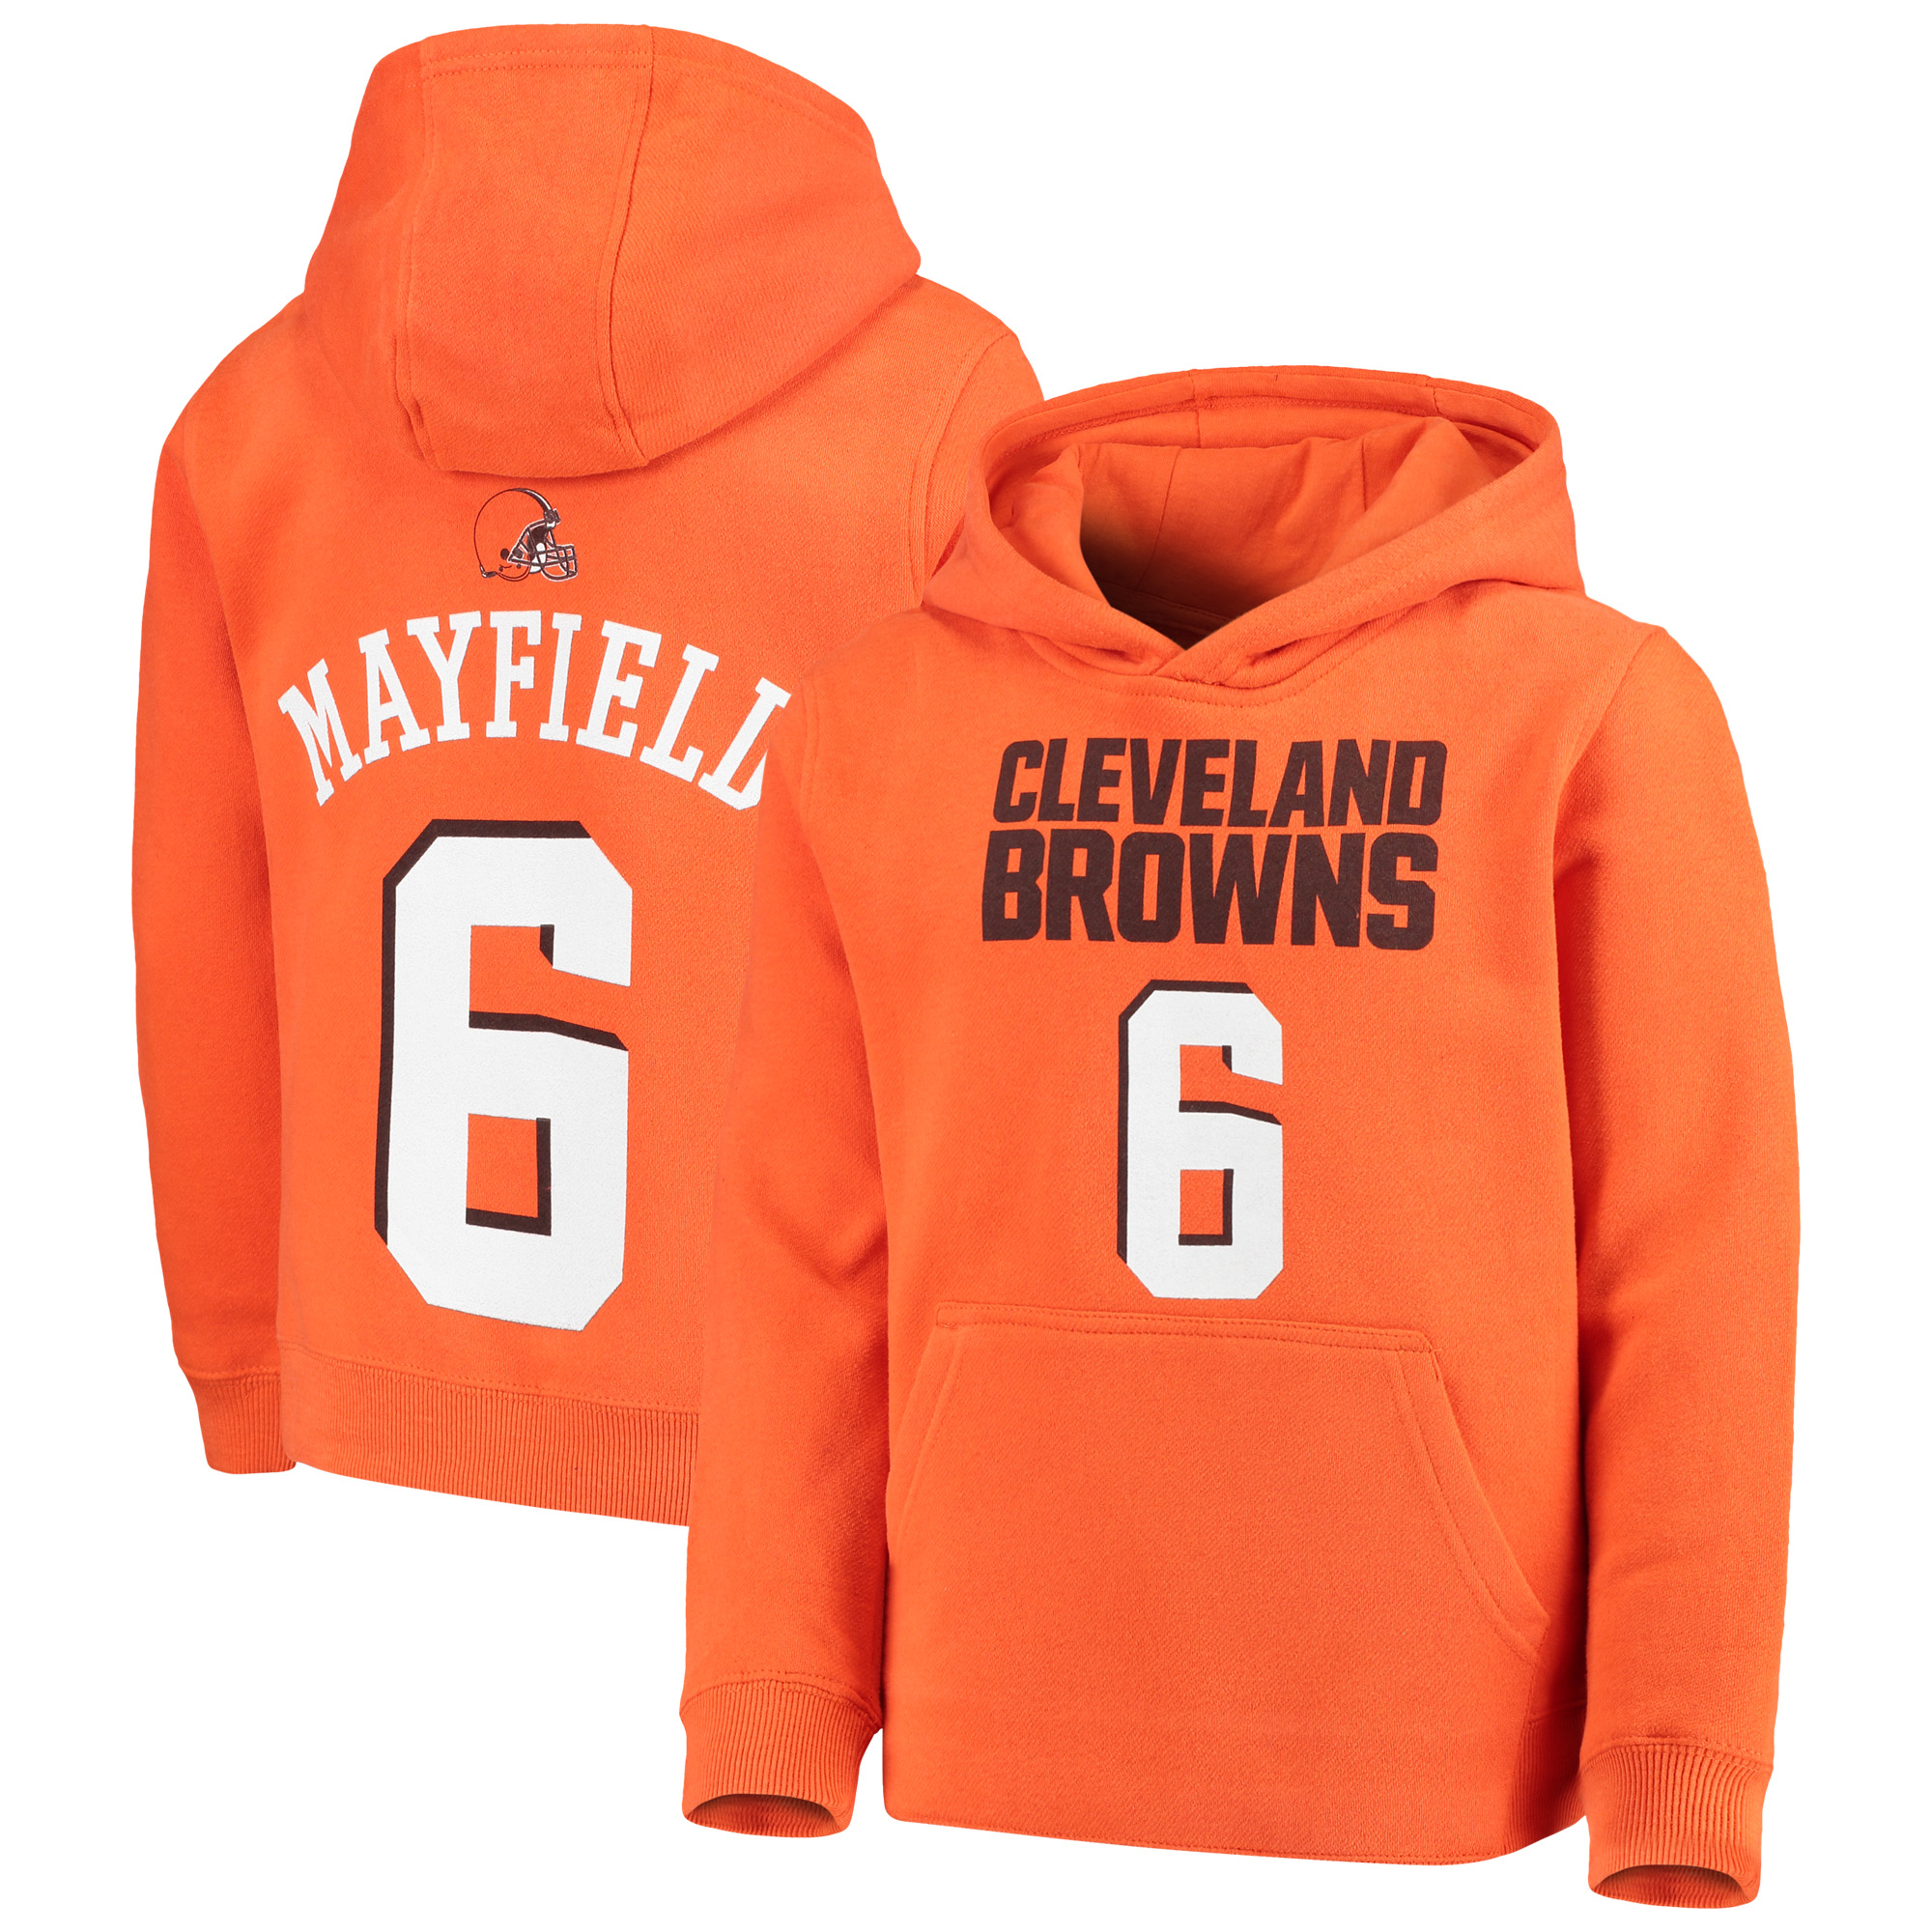 Baker Mayfield Cleveland Browns Youth Mainliner Player Name & Number Fleece Pullover Hoodie - Orange